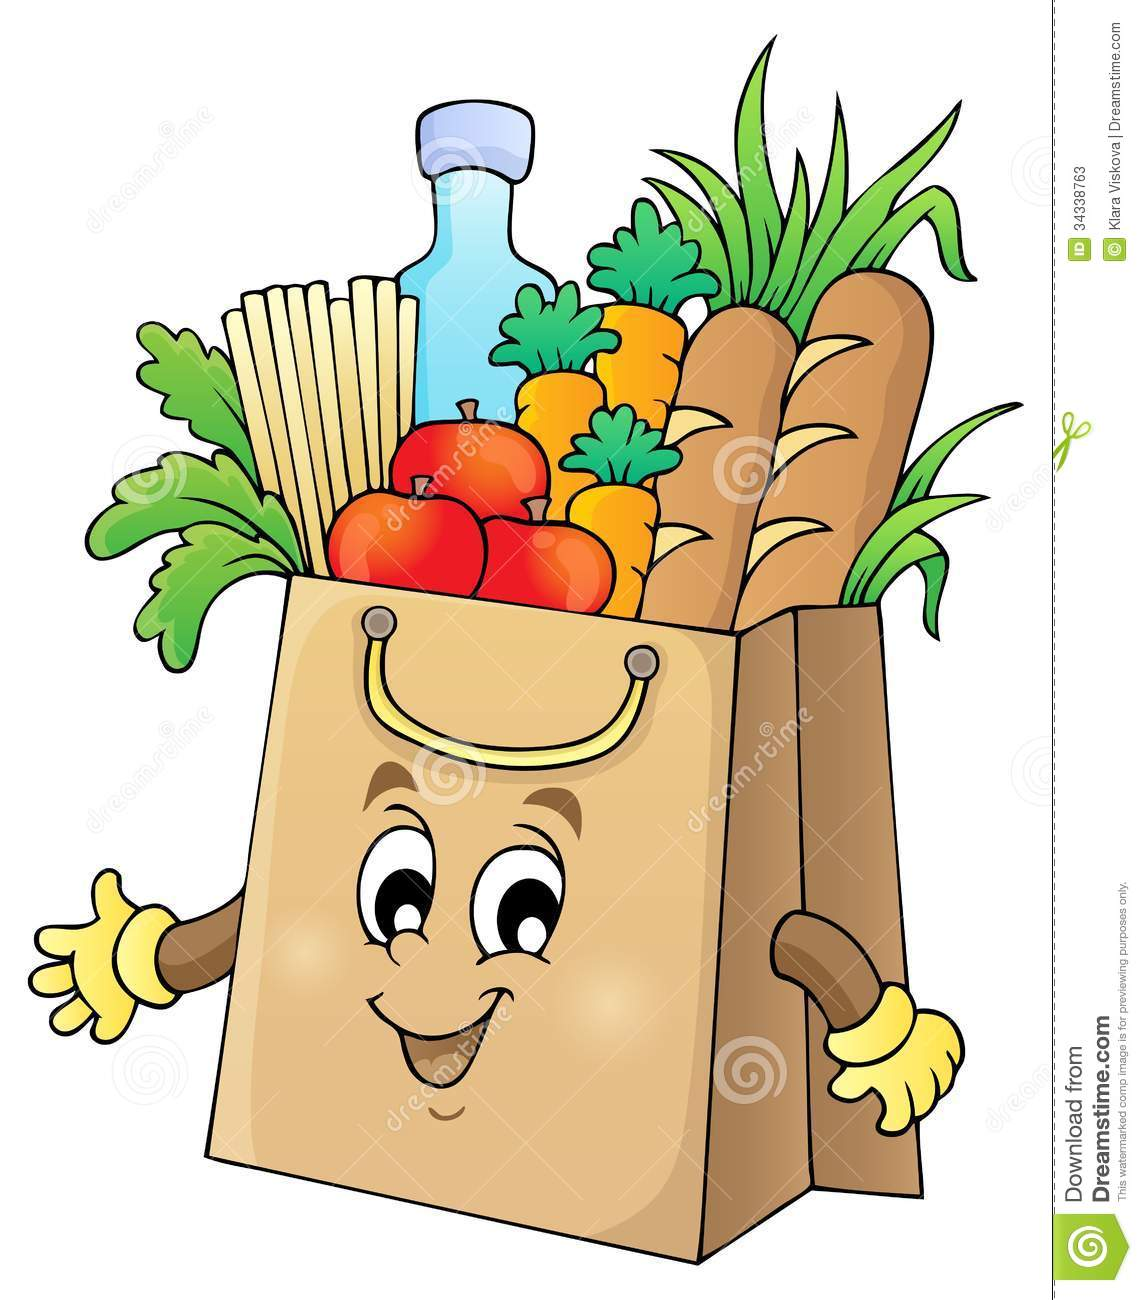 Grocery Bag Clip Art - Blogsbeta